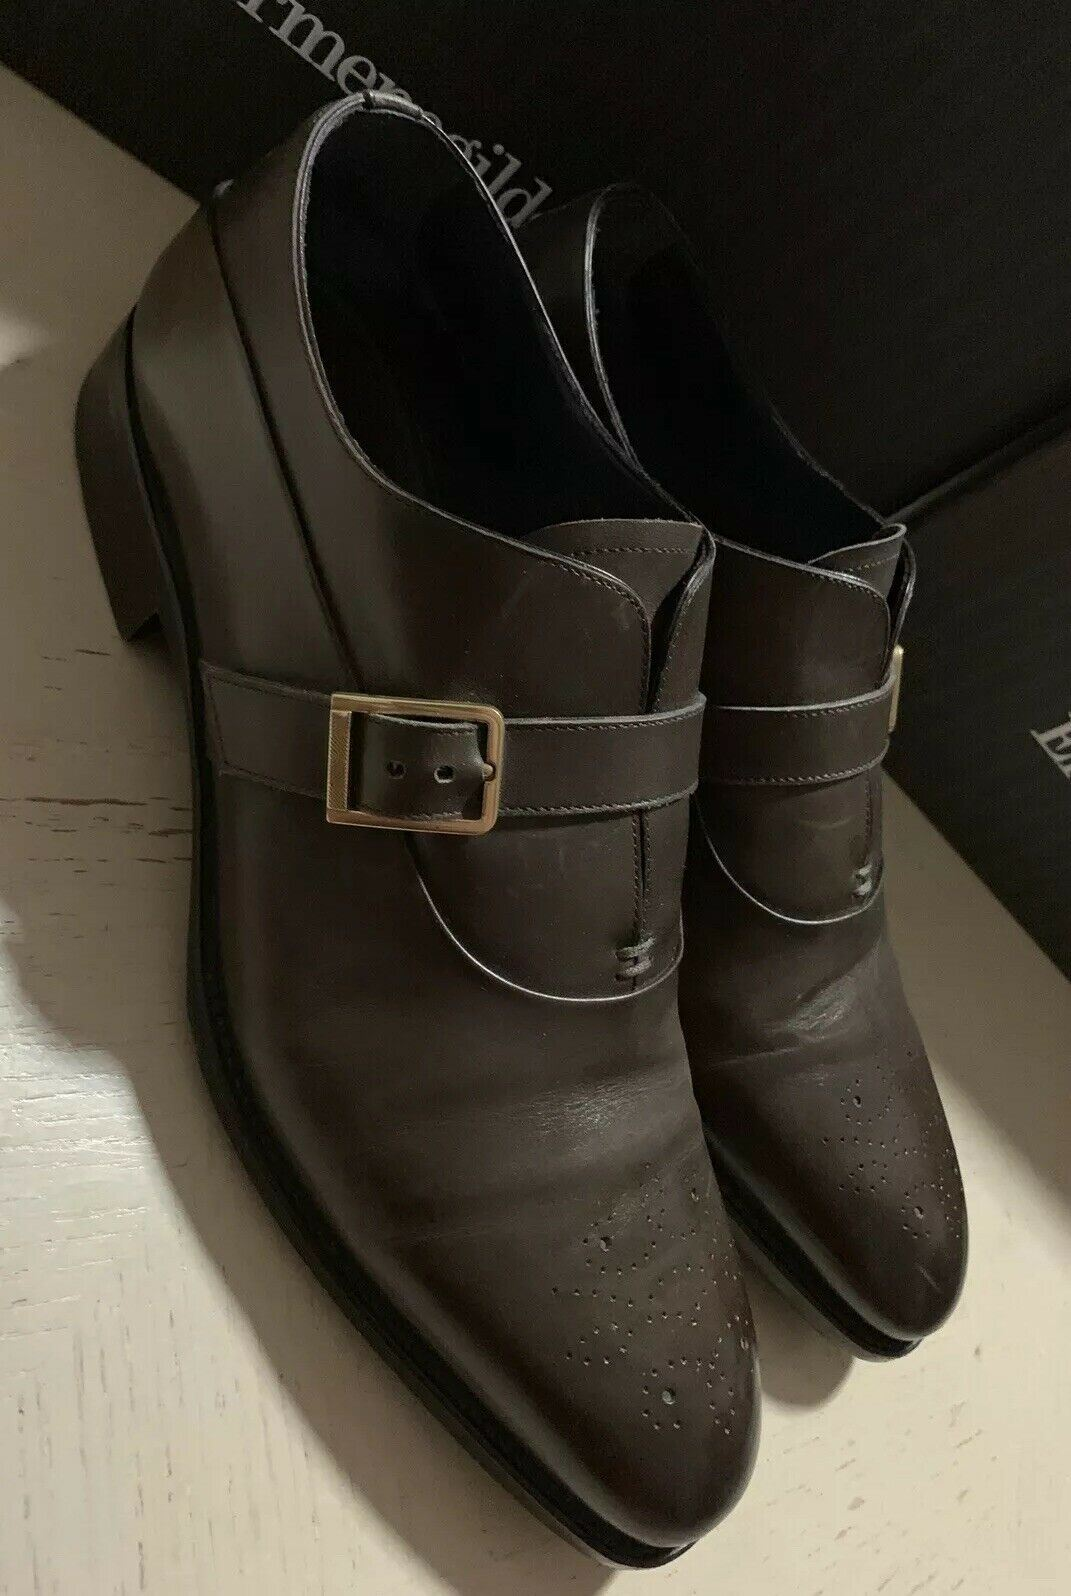 $1350 Ermenegildo Zegna Premium Oxford Shoes MD Brown 10.5 US ( 43.5 Eu ) Italy